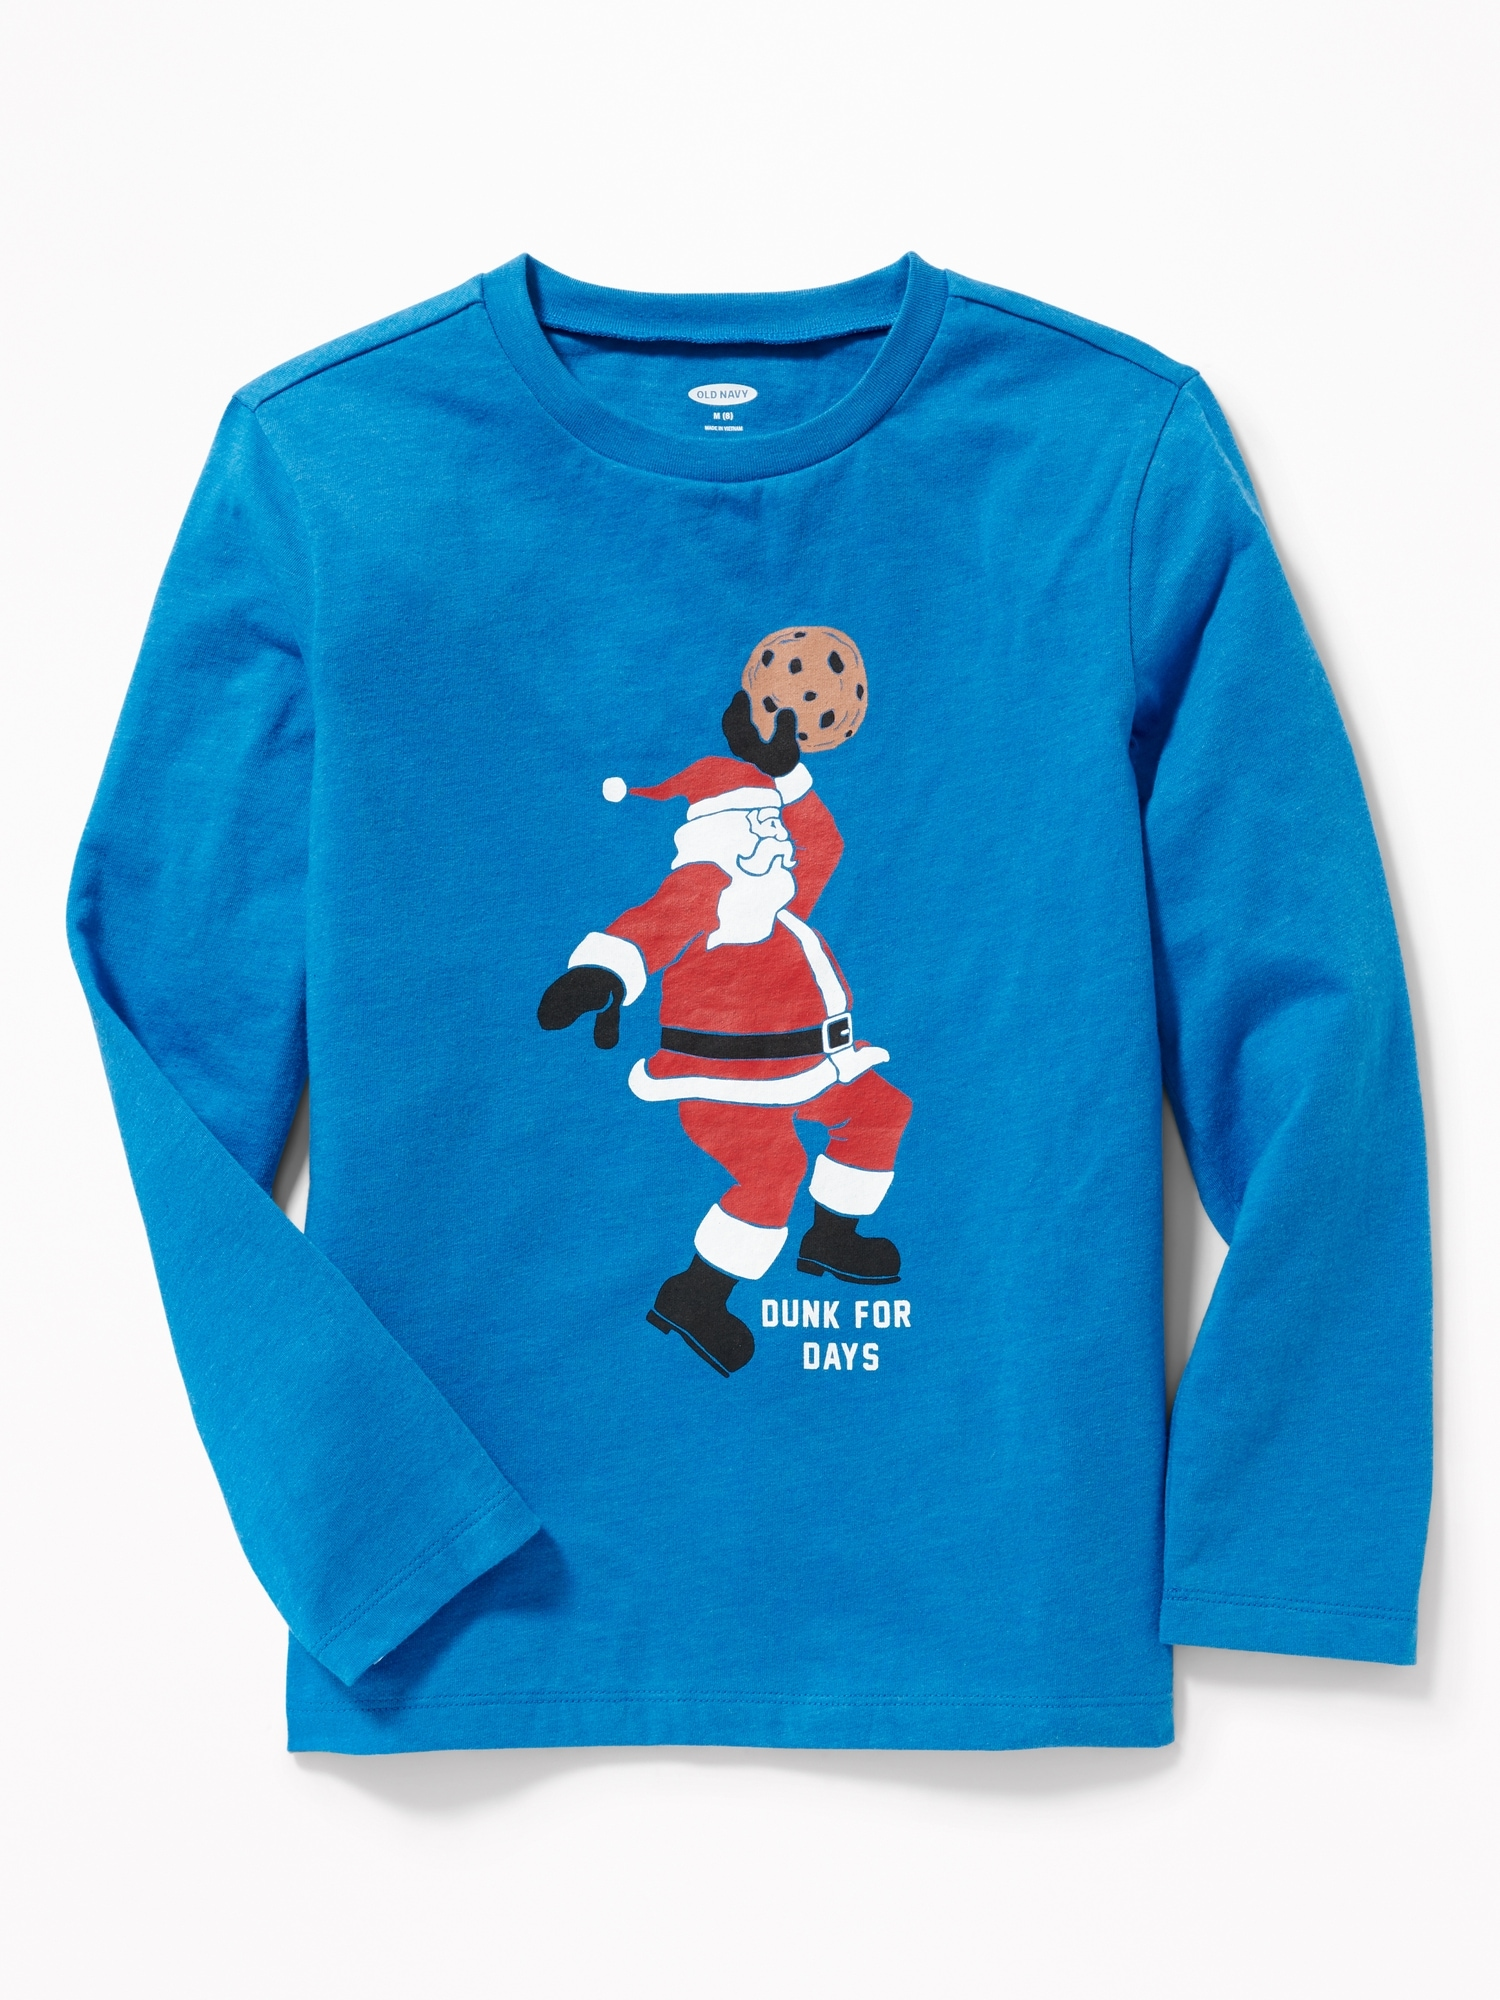 Christmas Graphic Crew-Neck Tee for Boys | Old Navy